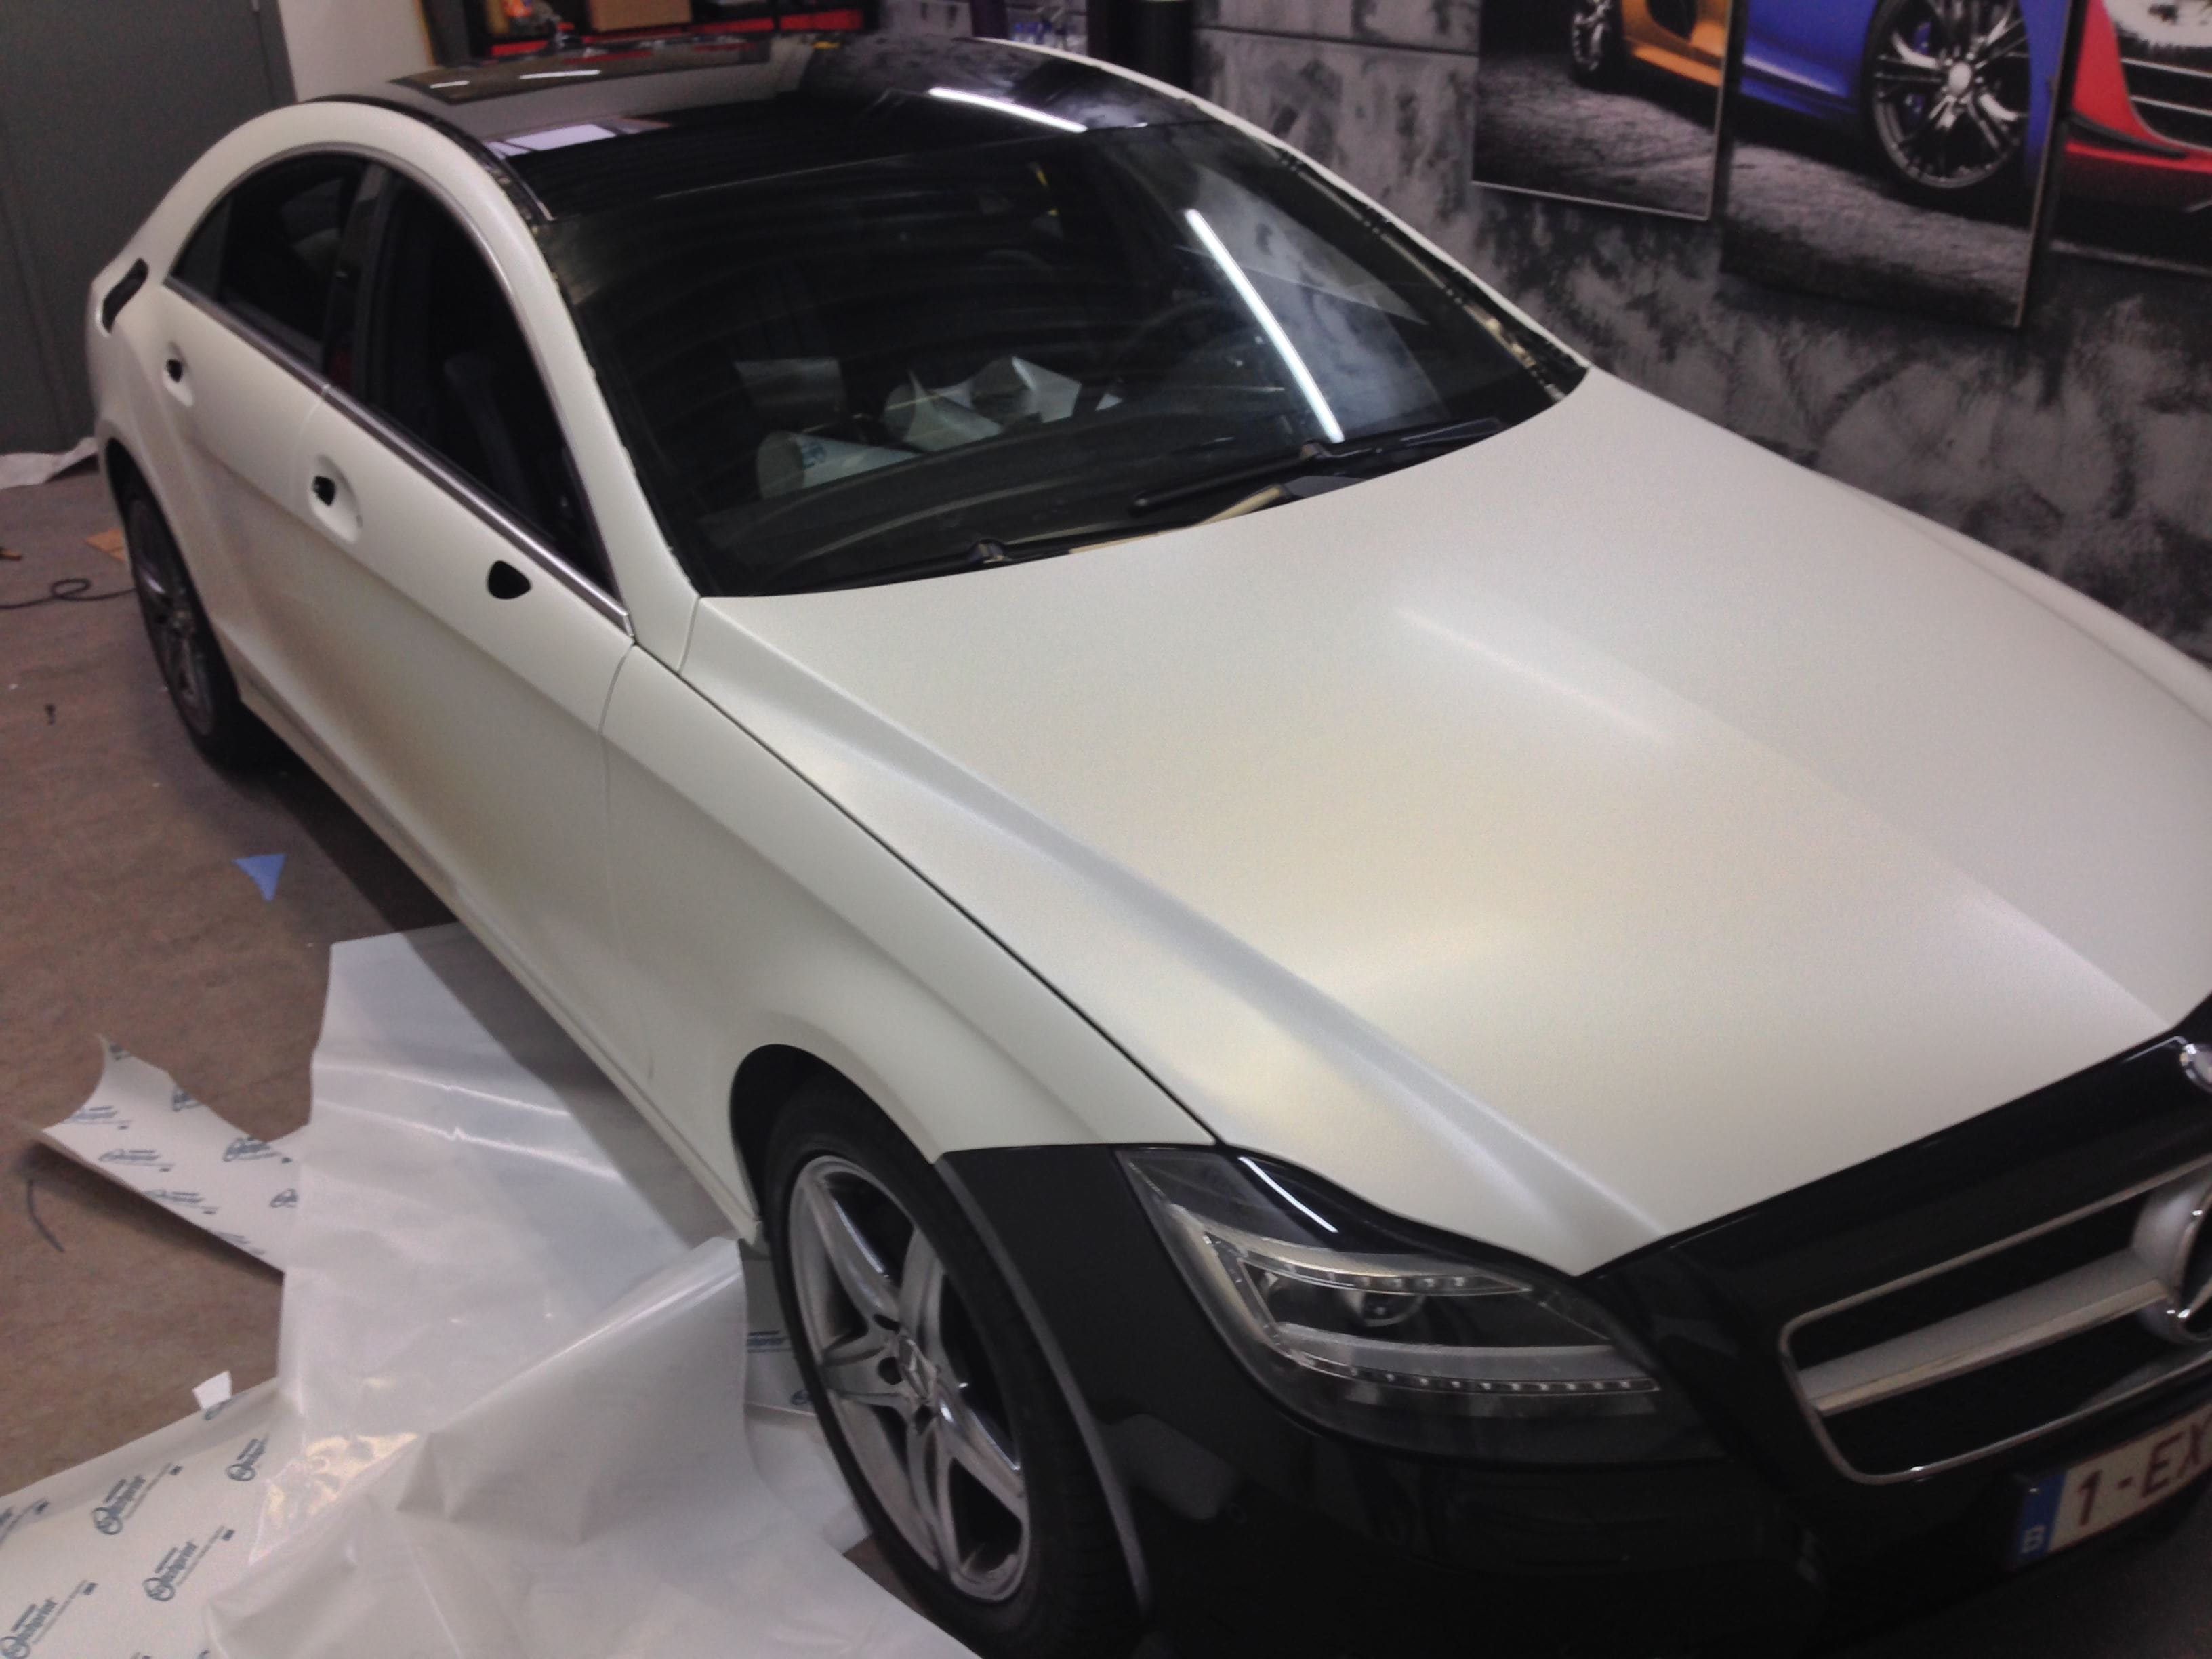 Mercedes CLS met White Satin Pearl Wrap, Carwrapping door Wrapmyride.nu Foto-nr:6184, ©2020